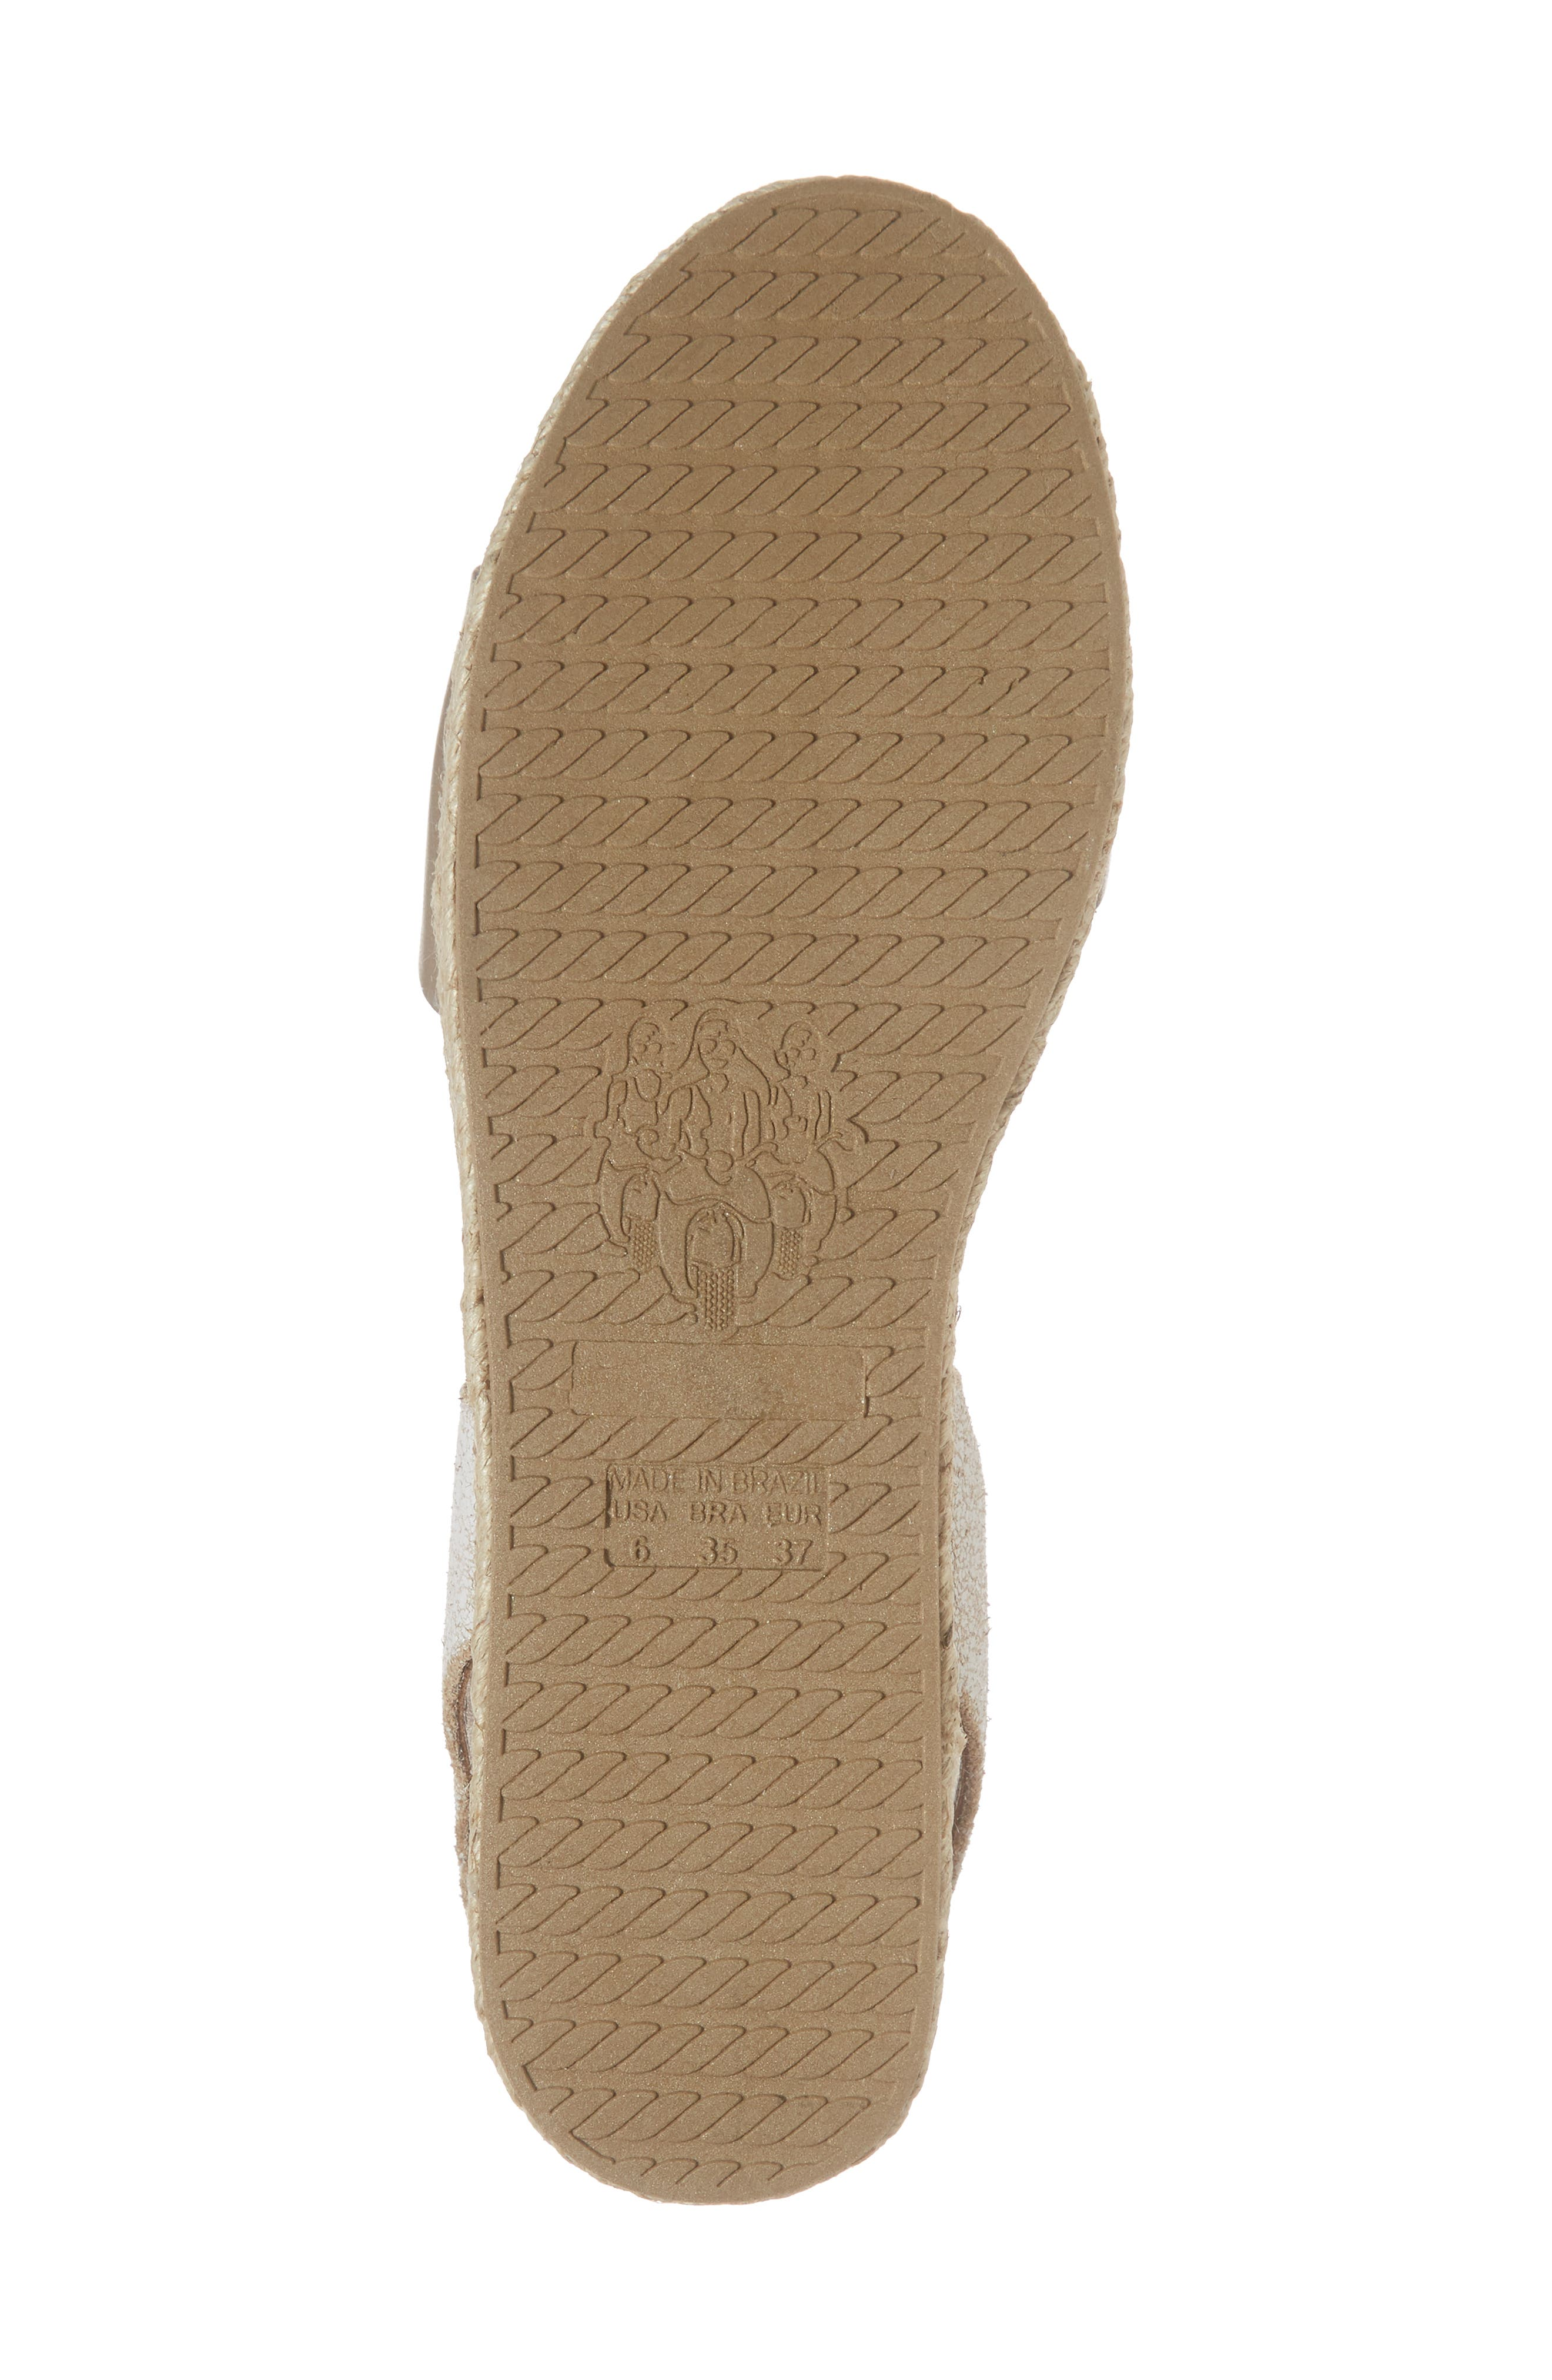 Erika Espadrille Sandal,                             Alternate thumbnail 6, color,                             042